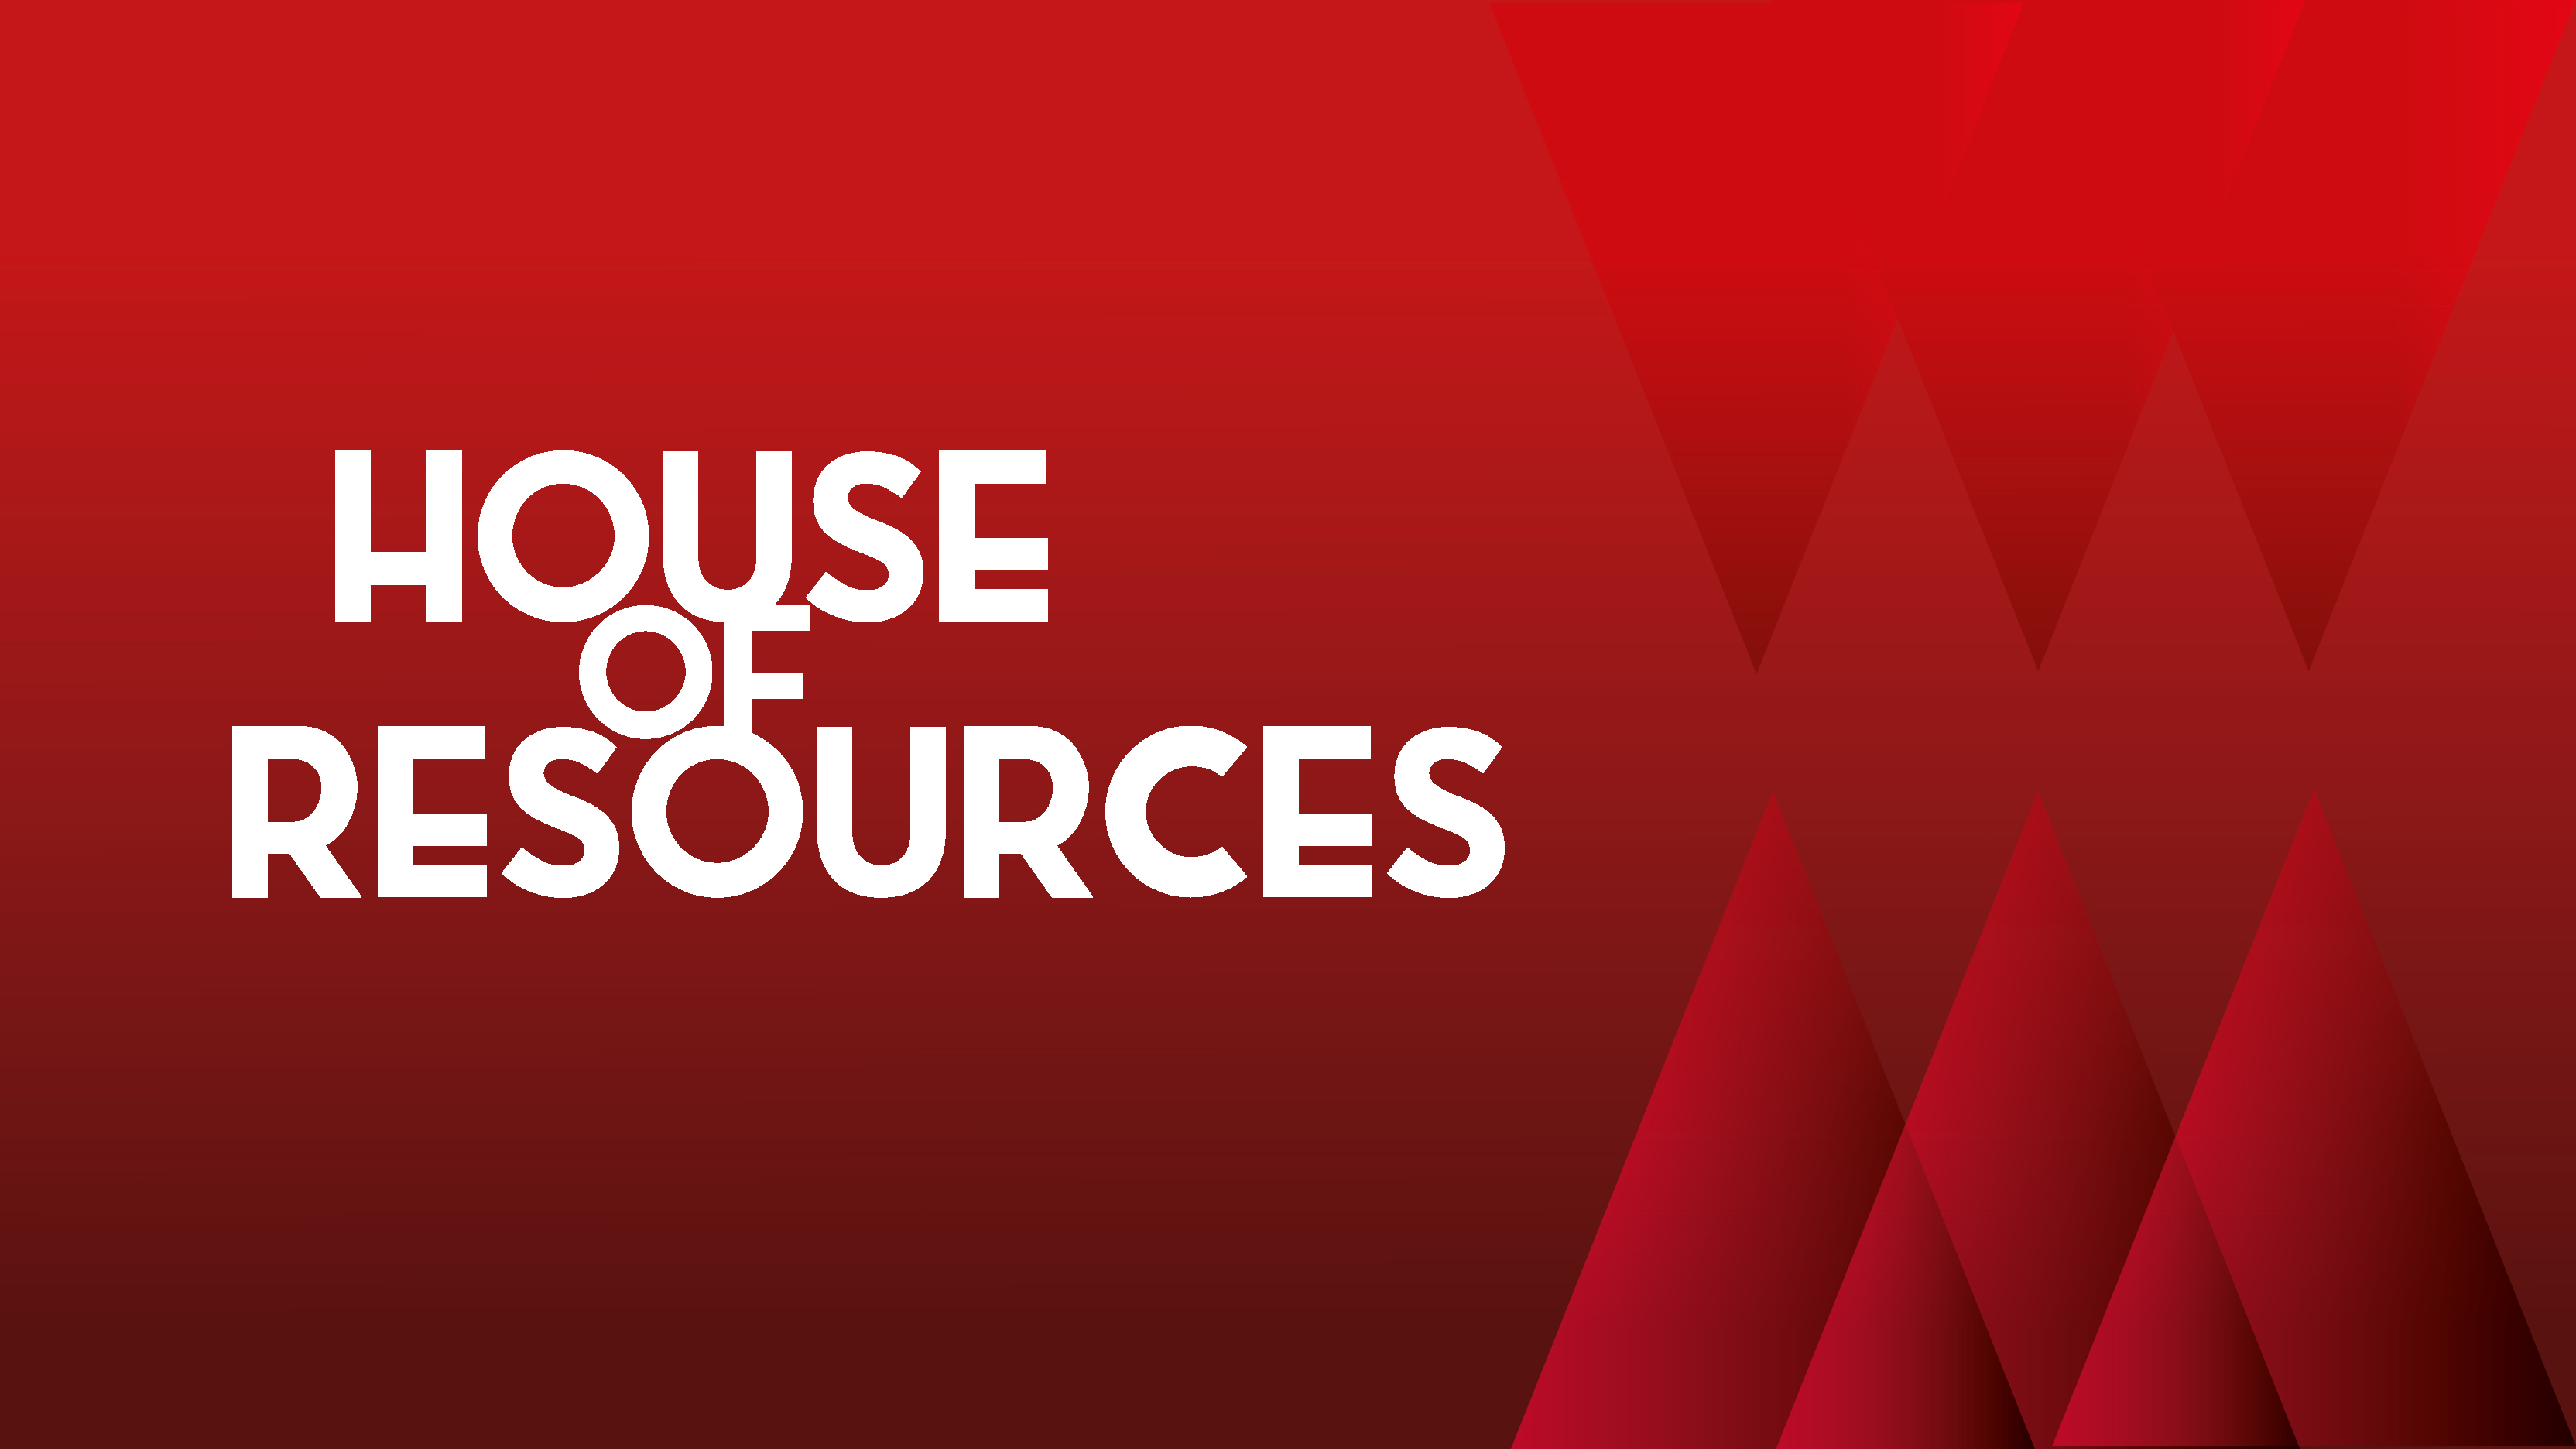 House of Resources